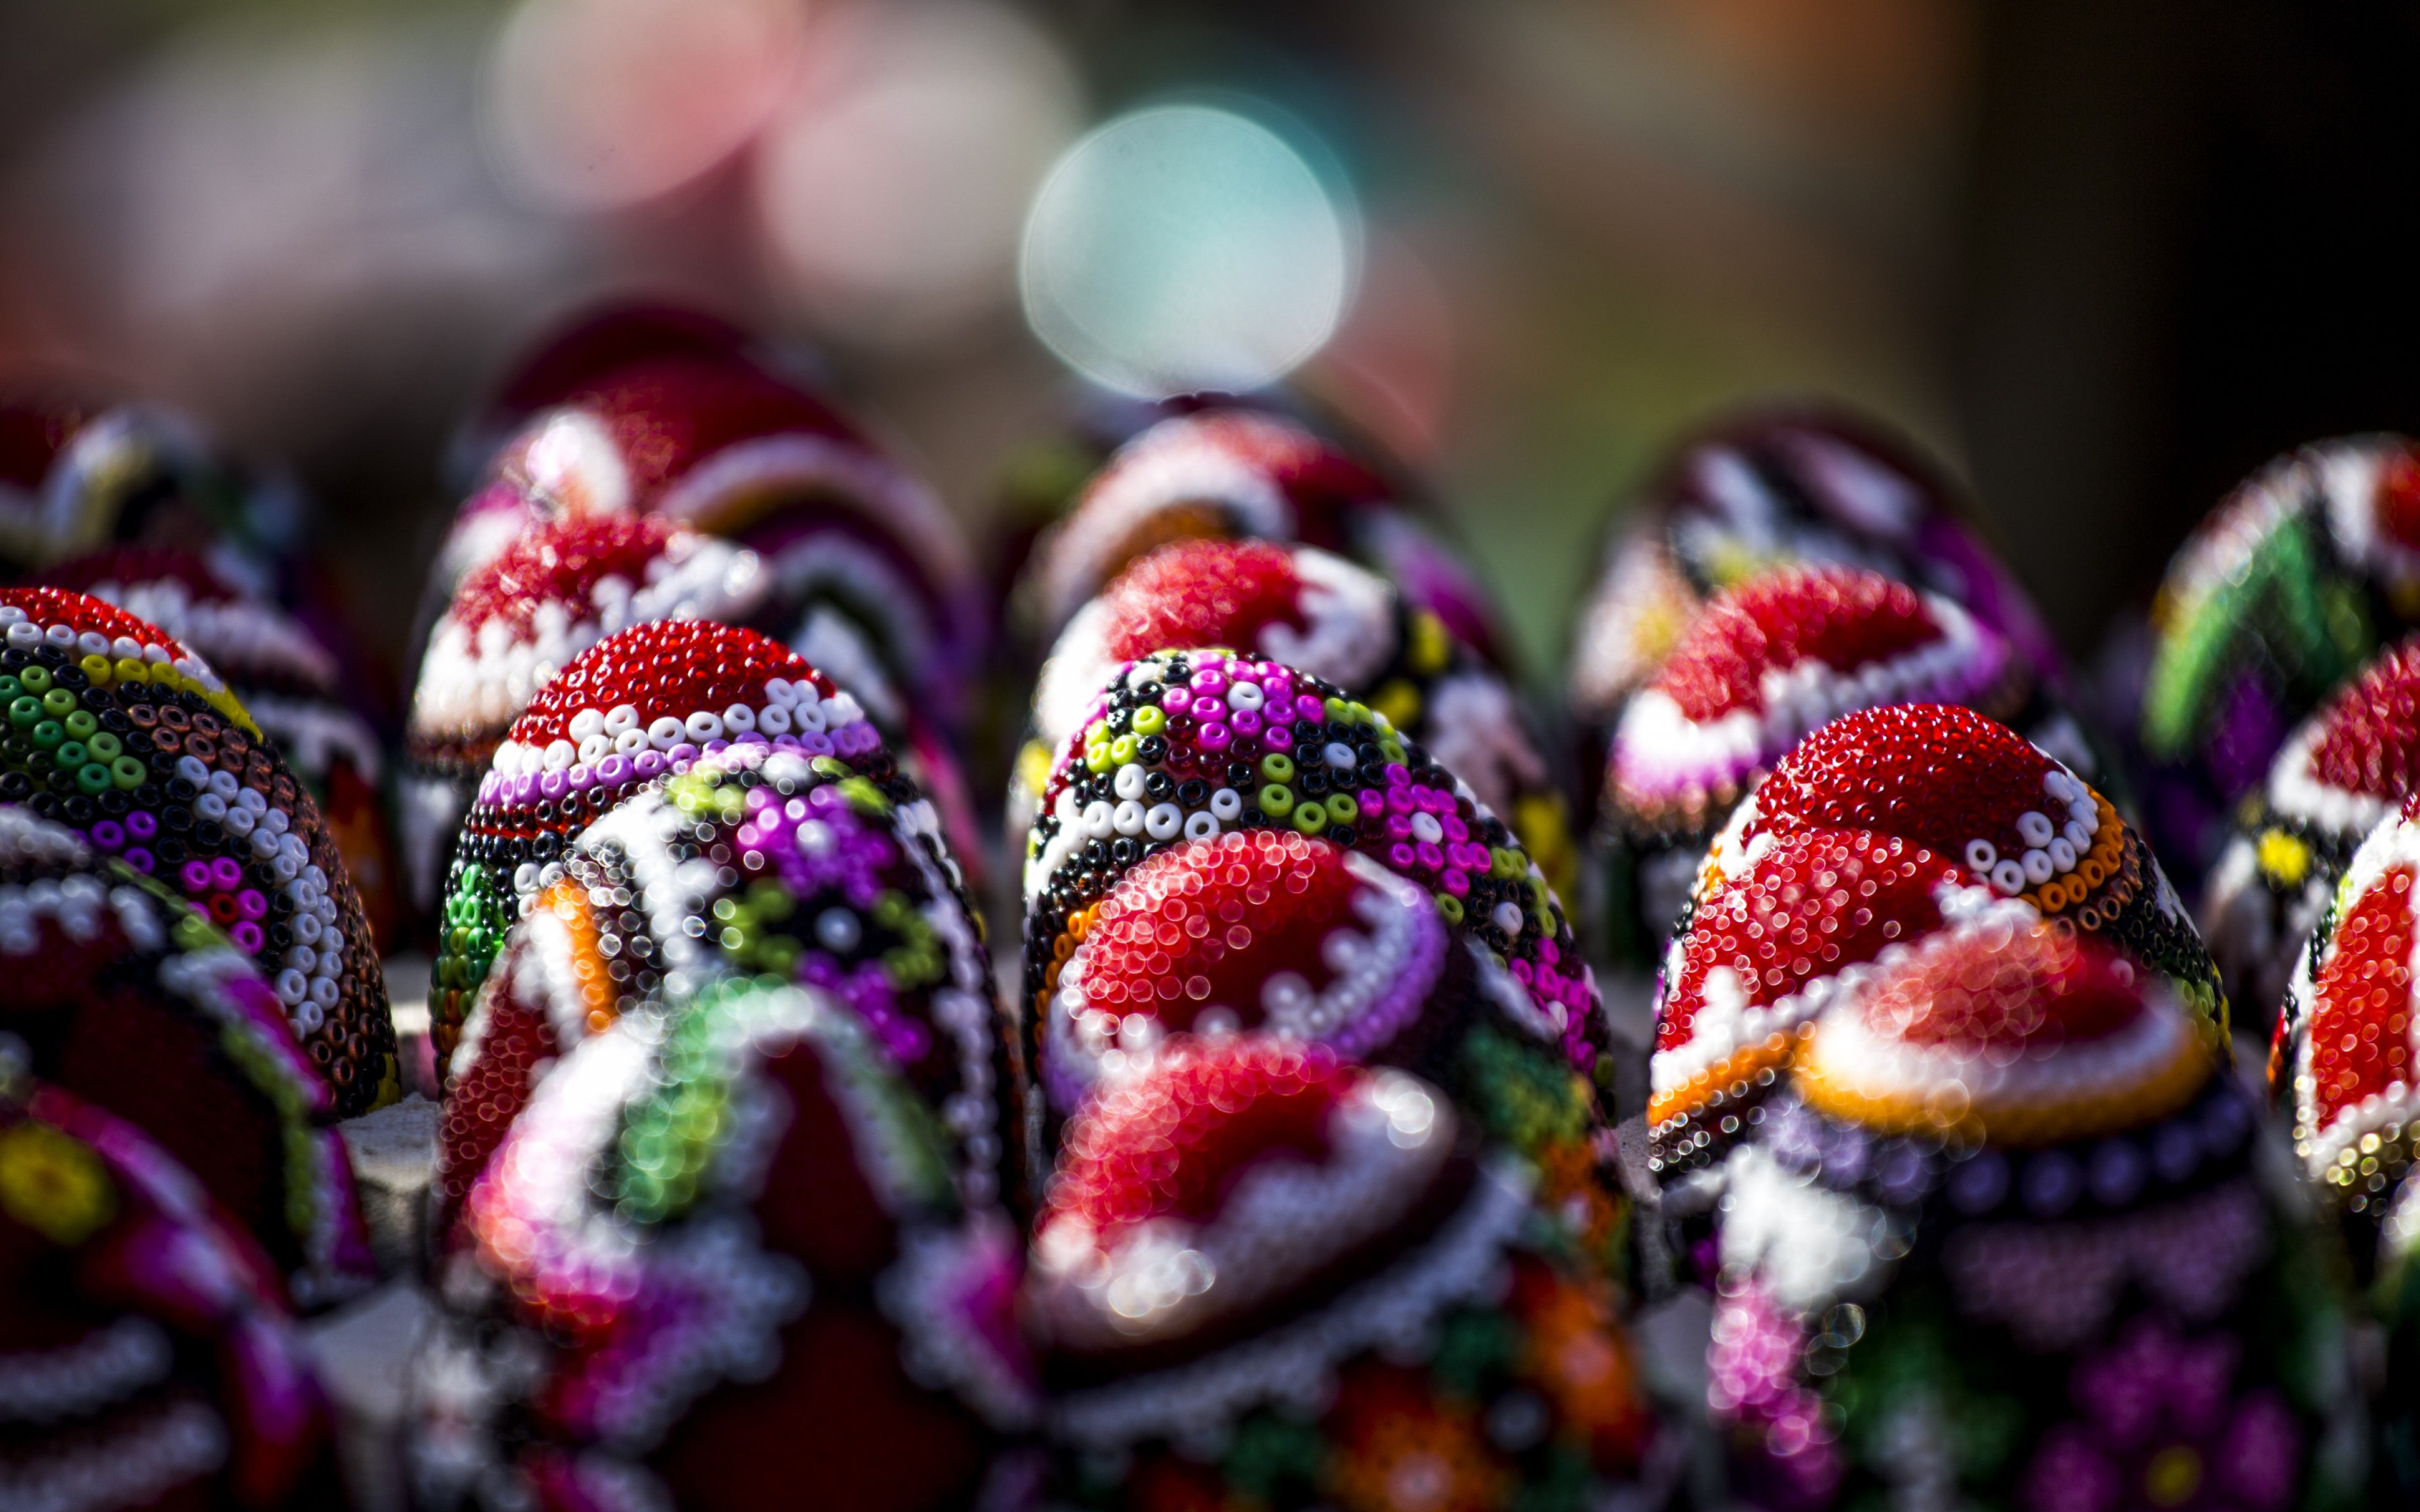 Easter eggs from Bucovina, Romania wallpaper 2880x1800